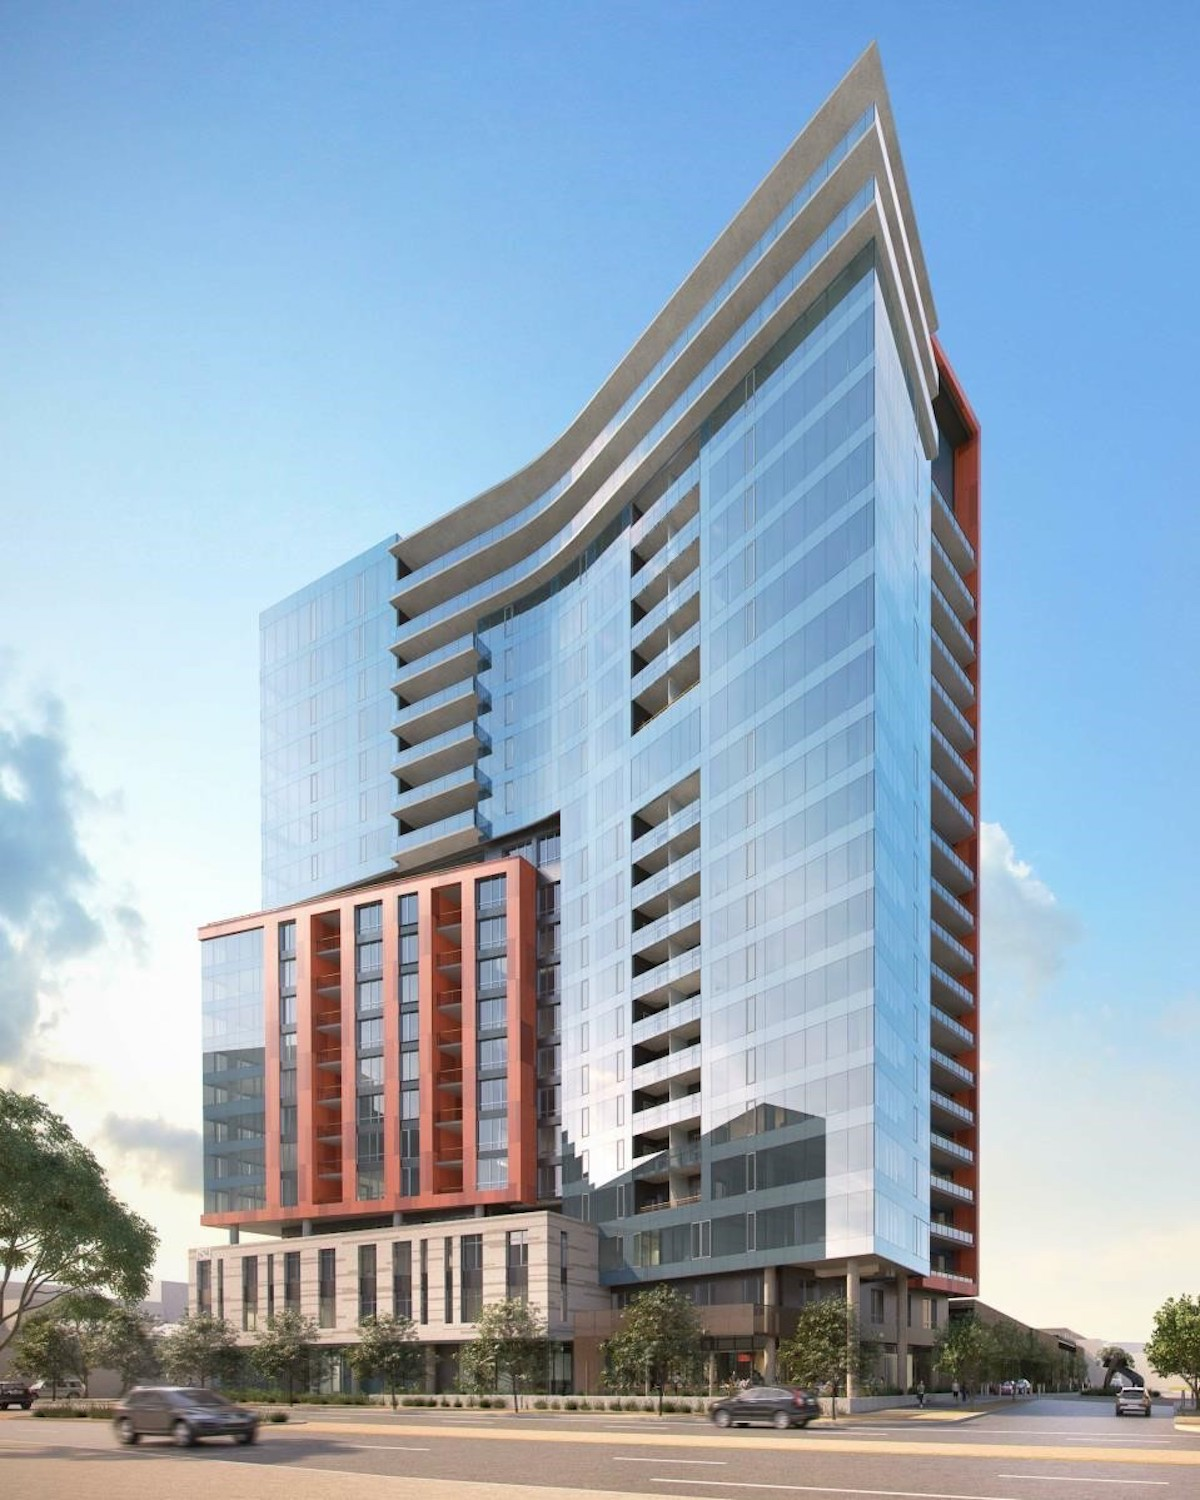 Apartment Store State College: McCarthy Building Companies Breaks Ground On Mirabella At